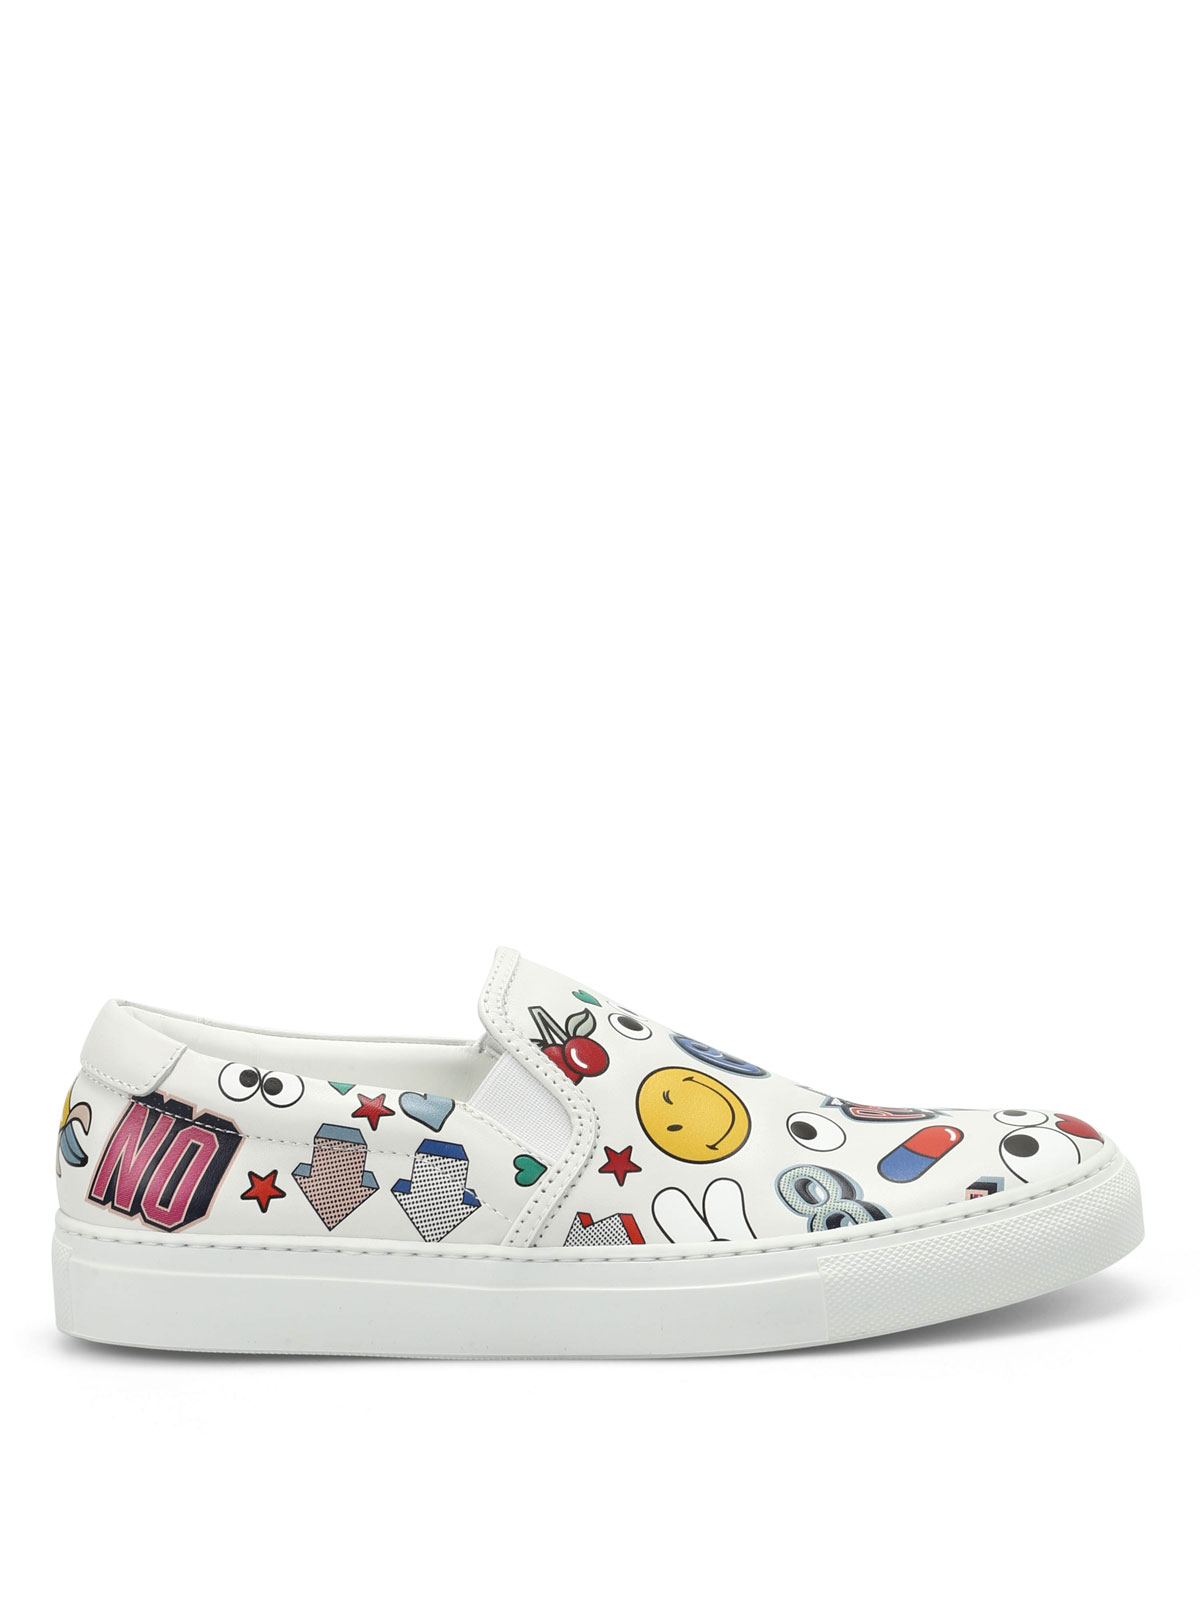 Chaussures - Mocassins Anya Hindmarch 2ZClP